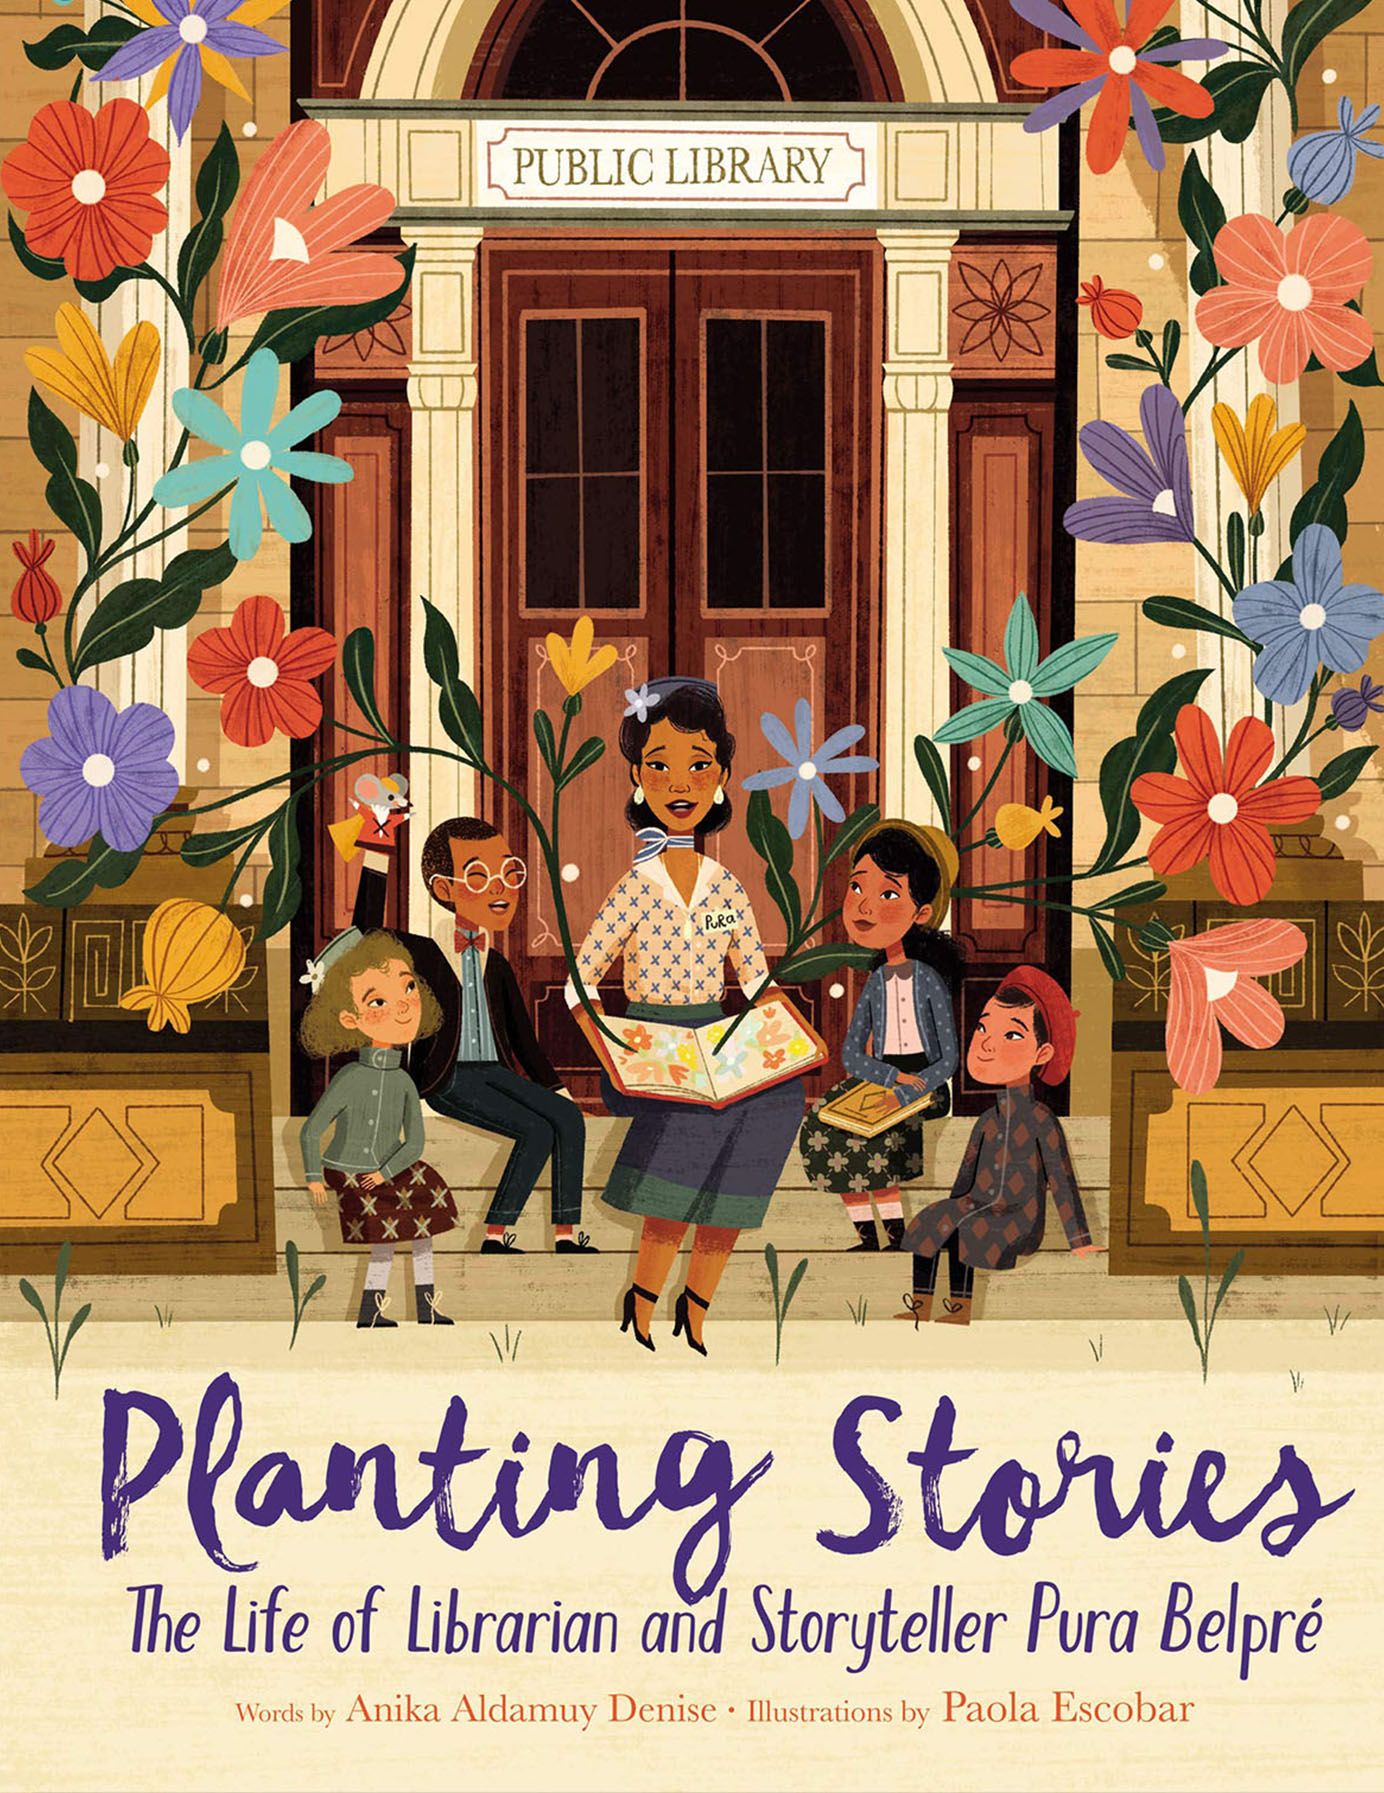 Planting Stories: The Life of Librarian and Storyteller Pura Belpre by Anika Aldamuy Denise